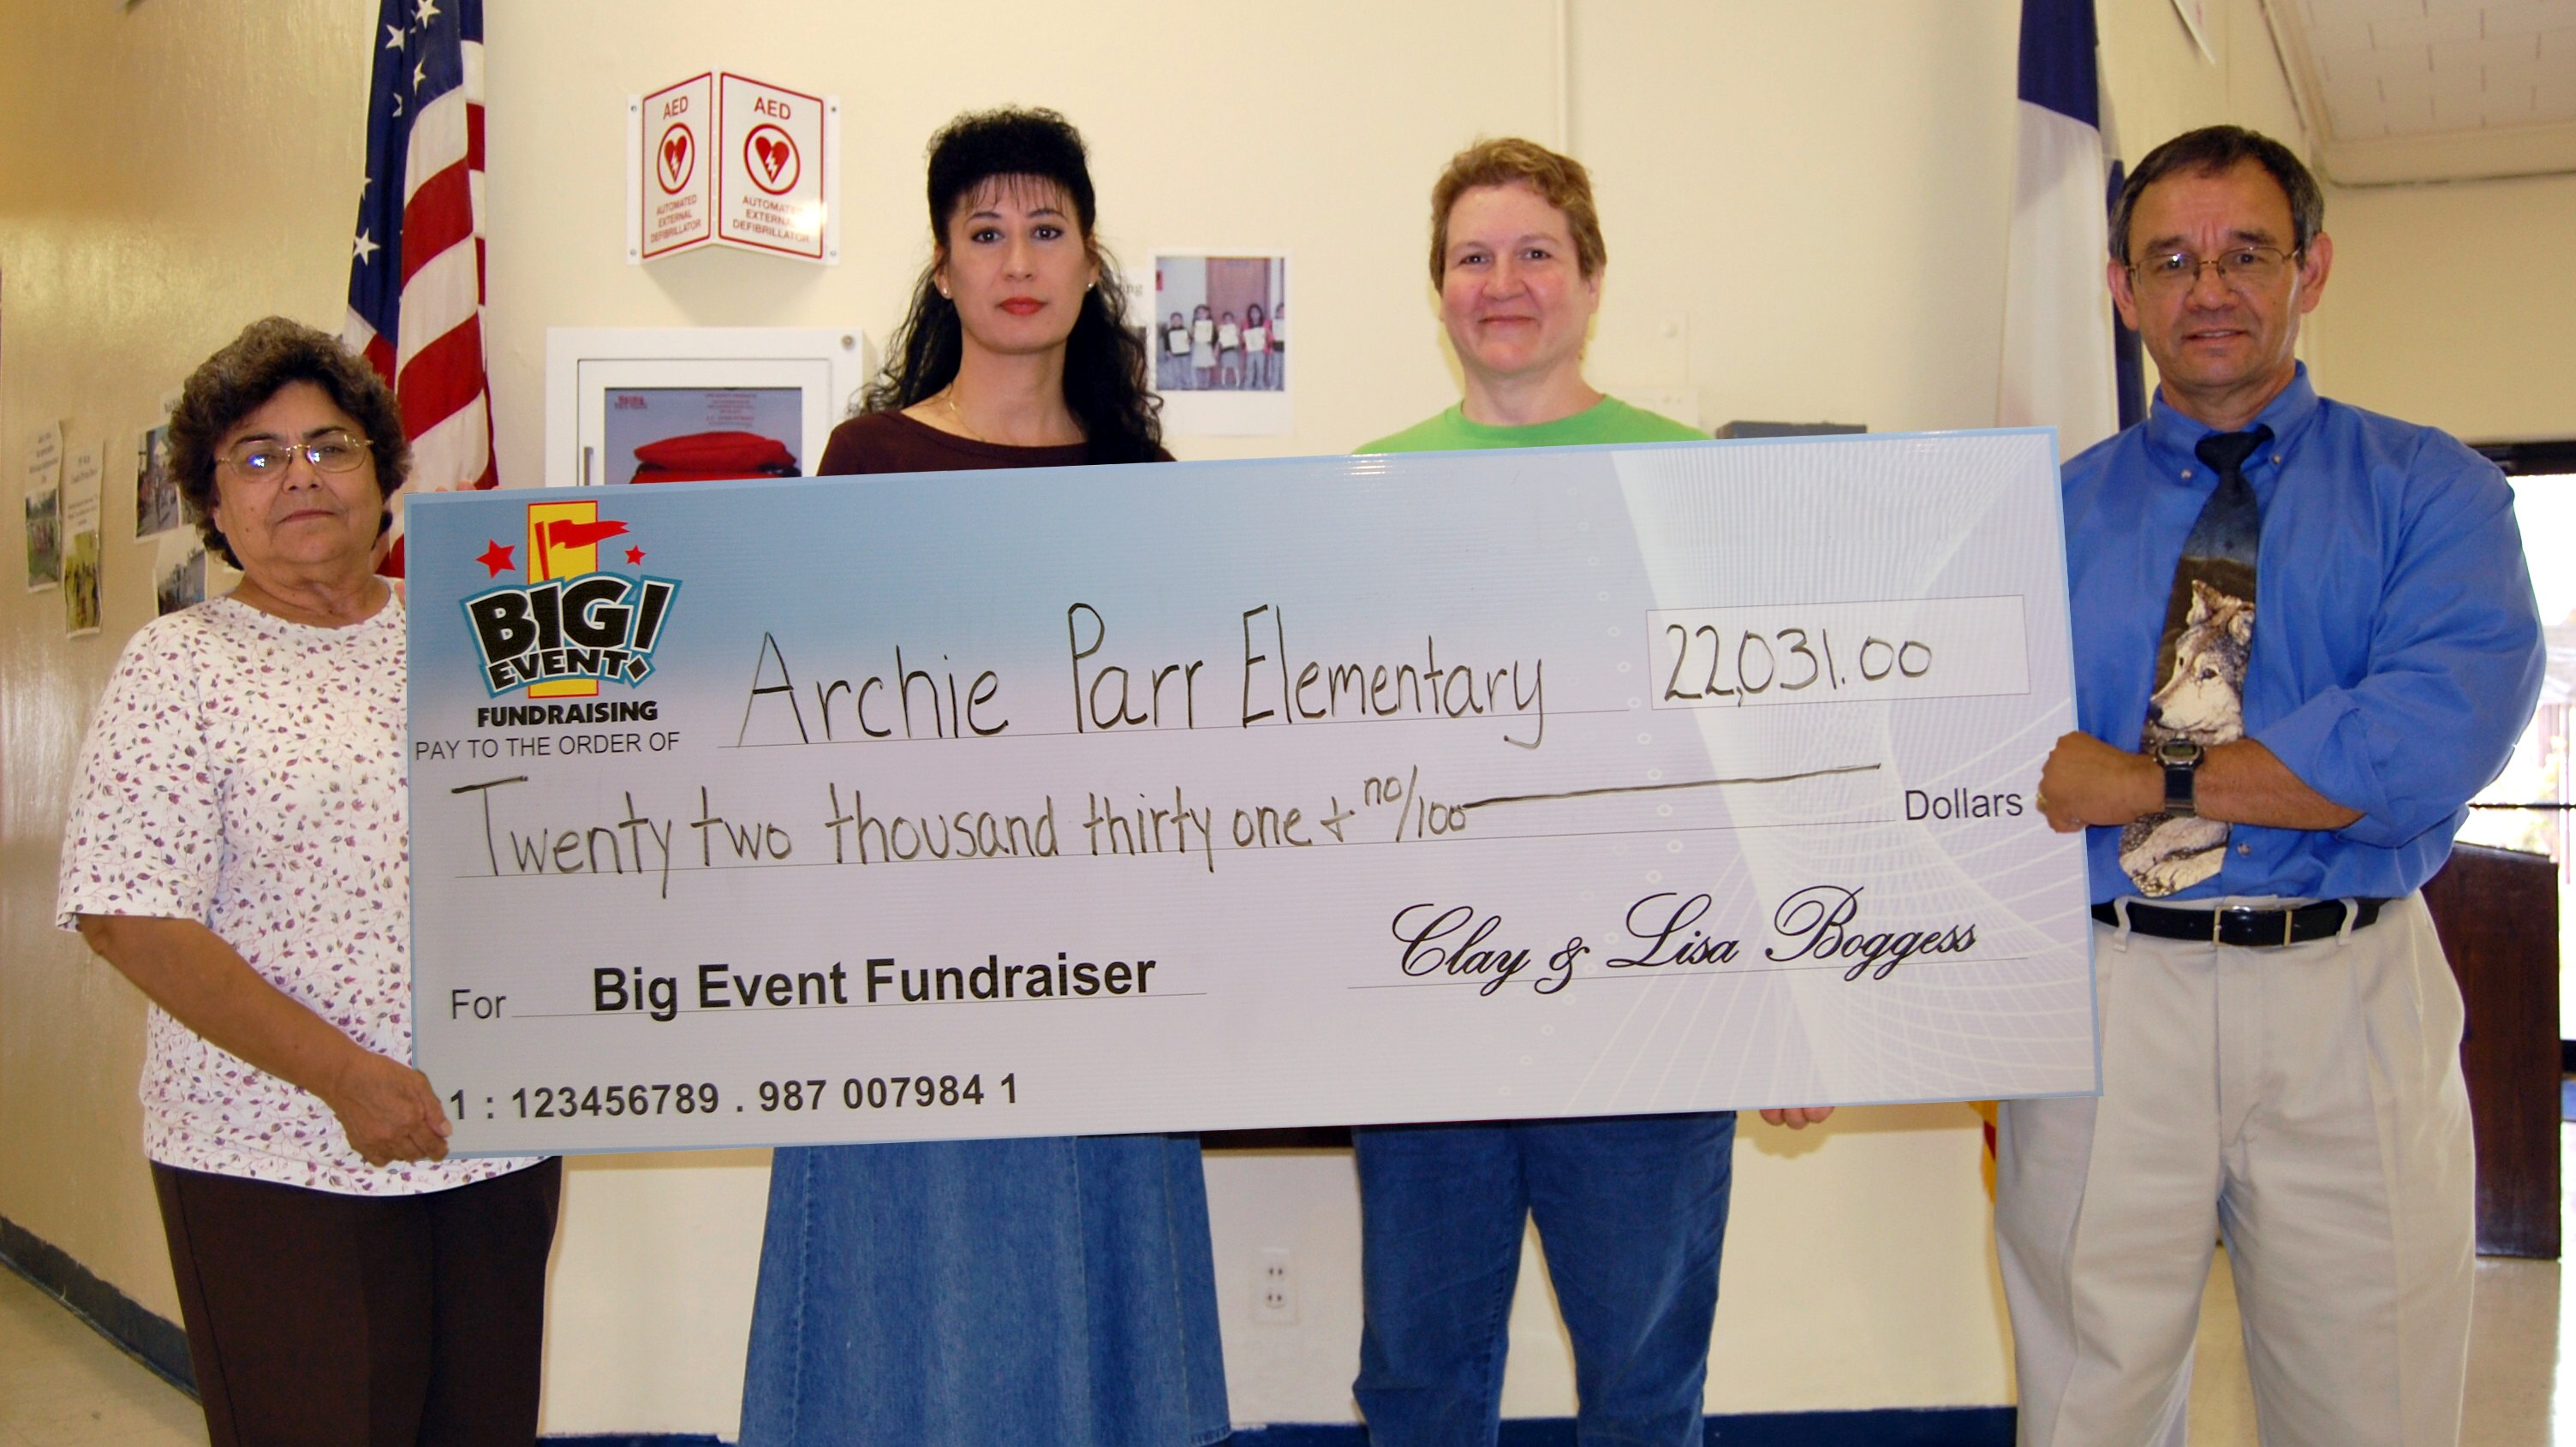 Archie Parr Elementary School fundraising team holding check